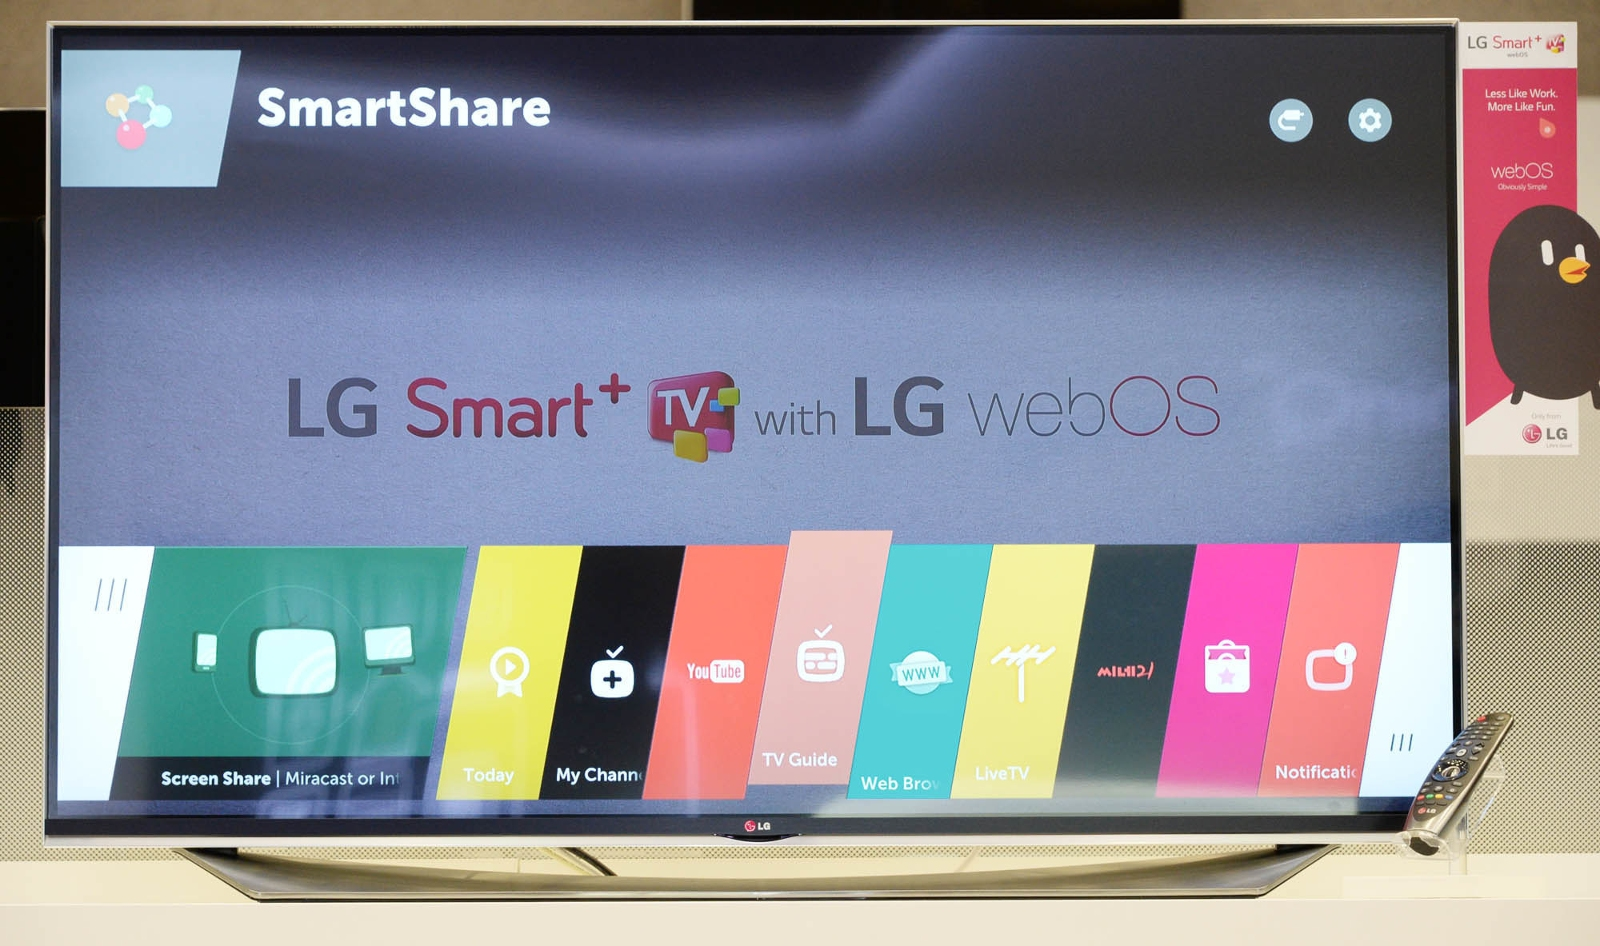 LG-Web-OS-2.0-smart-tv-smart-tv-intimidade